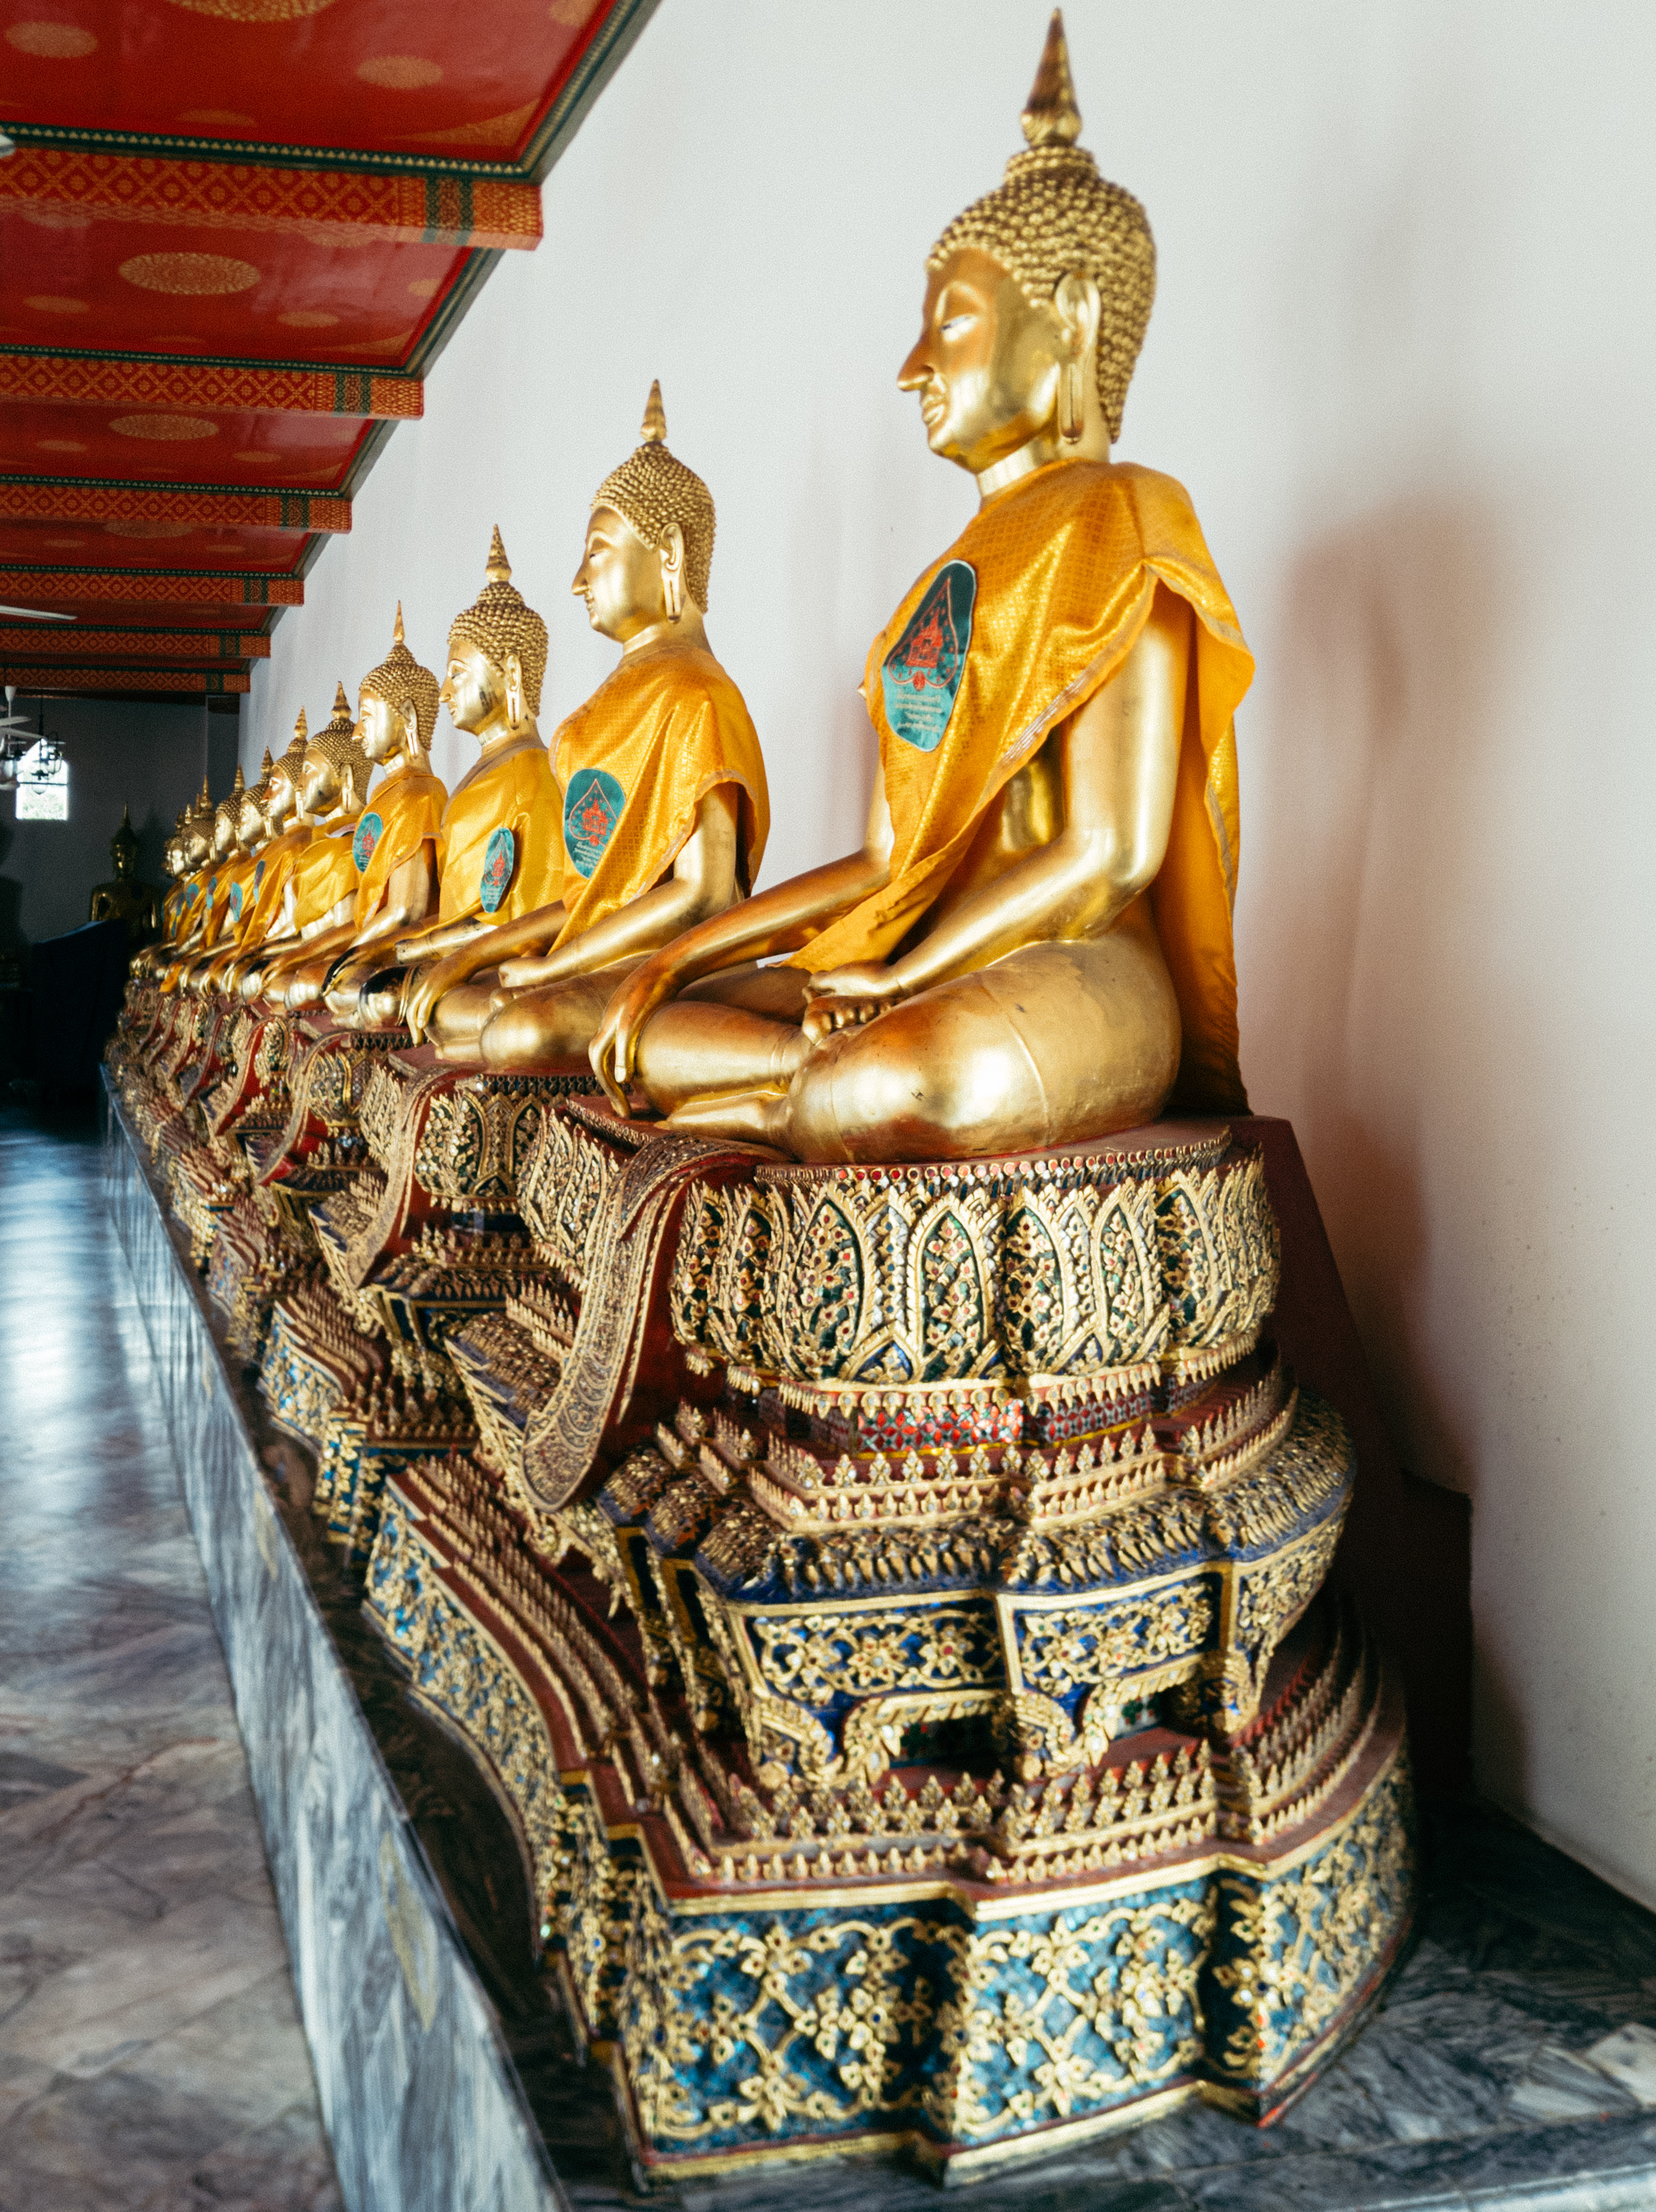 Row of Buddha statues in Thailand